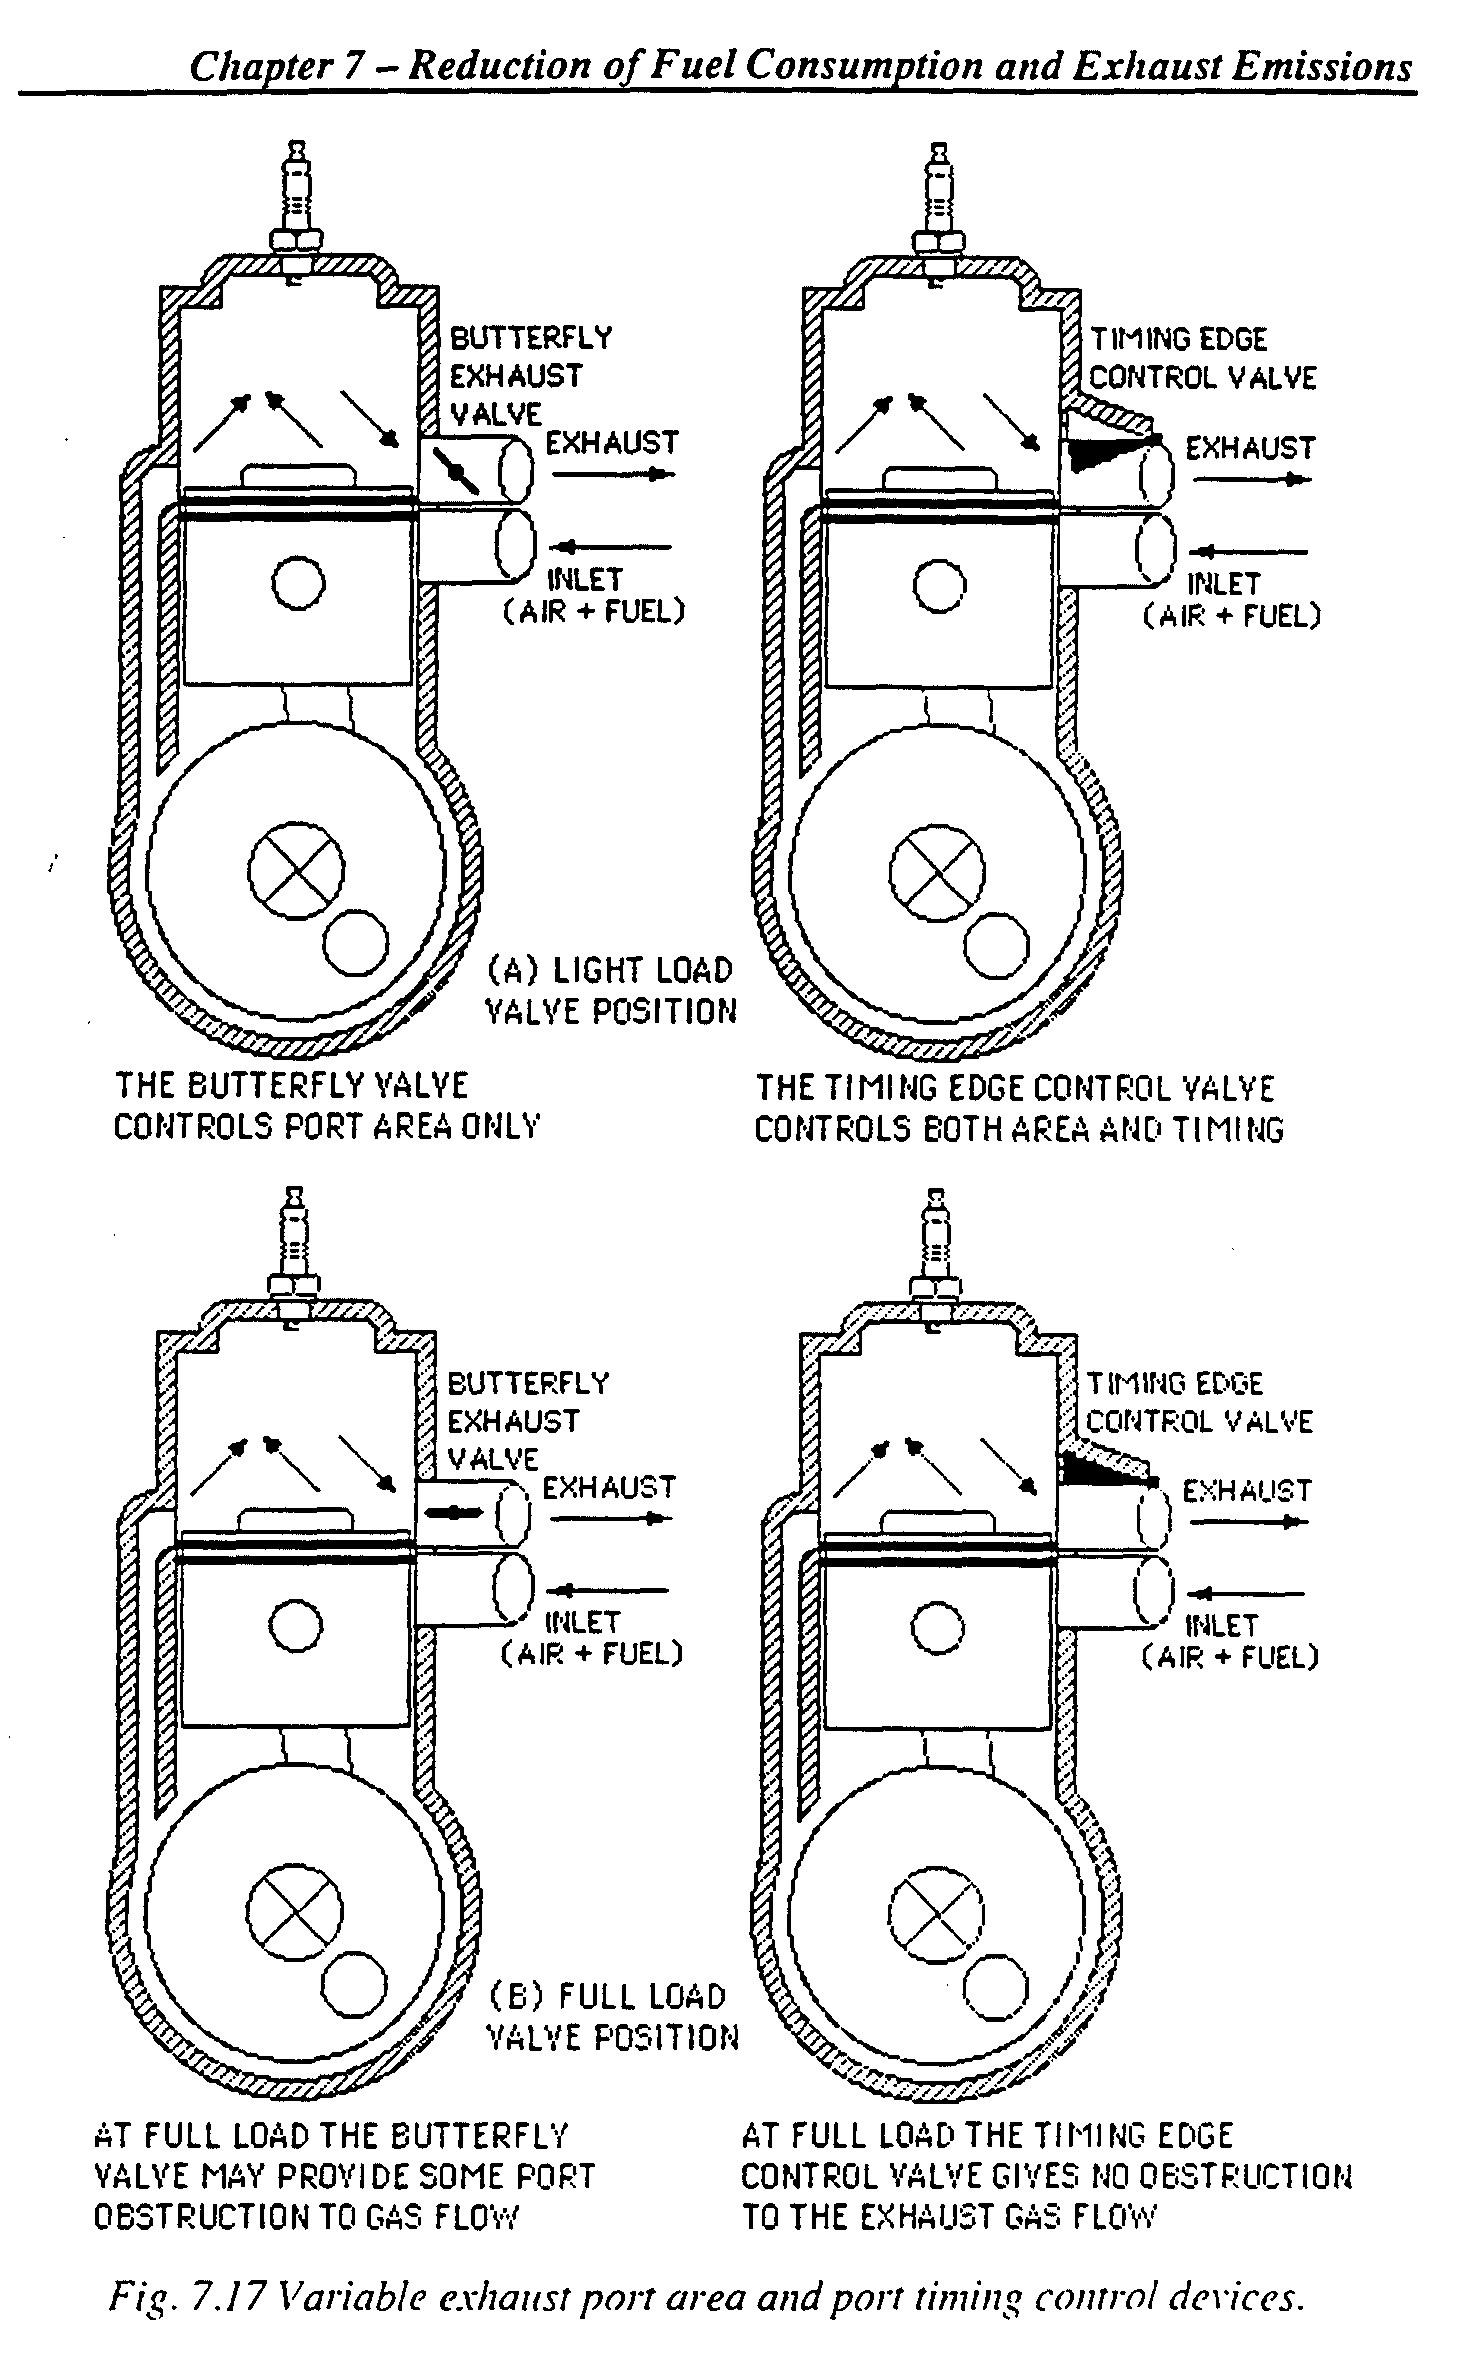 Valve Timing Diagram Of 4 Stroke Petrol Engine Wo A1 Two Cycle Engine with Reduced Hydrocarbon Emissions Of Valve Timing Diagram Of 4 Stroke Petrol Engine